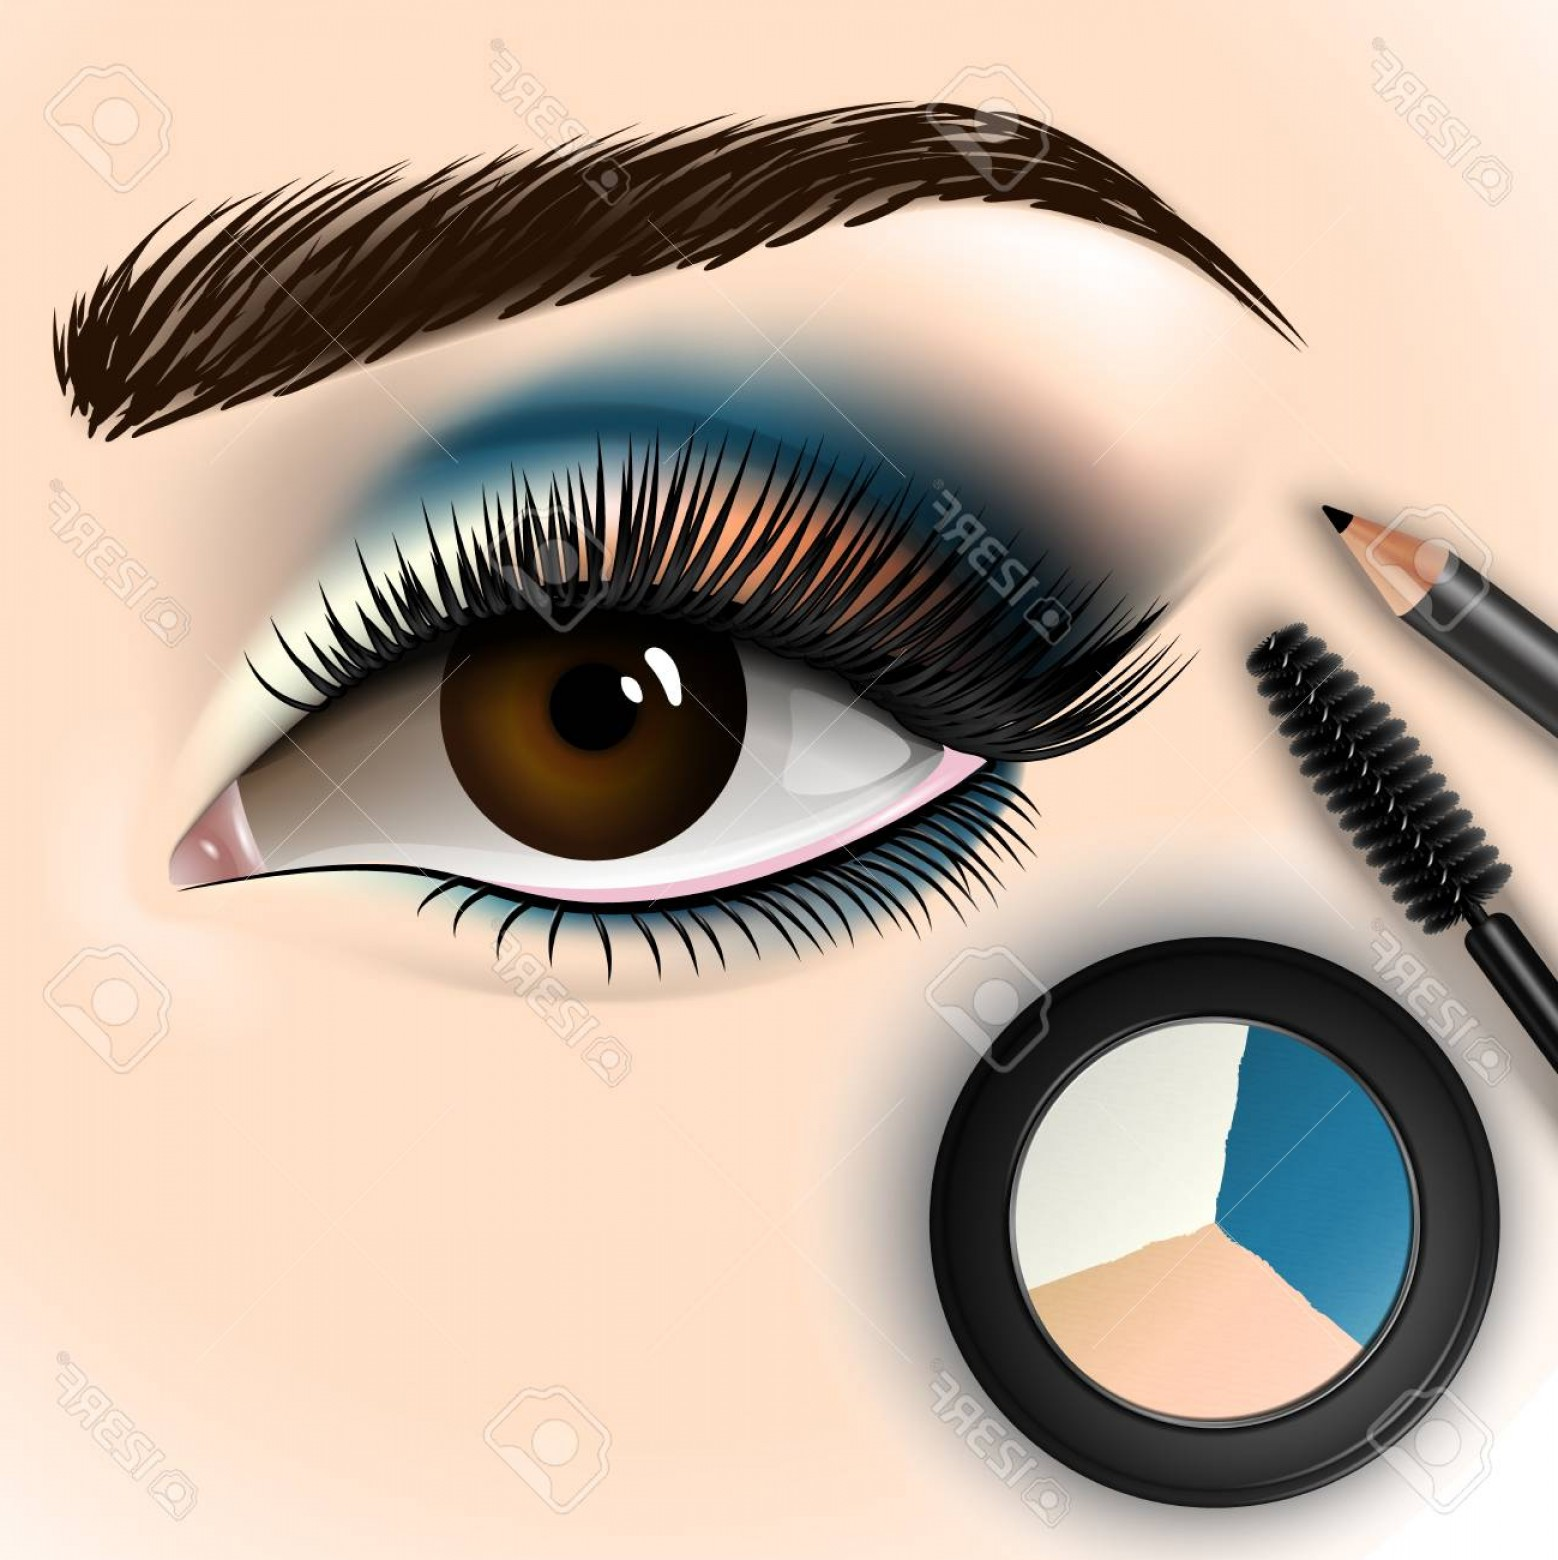 Vector Illustration Eyes Makeup: Photostock Vector Beautiful Eye With Makeup Accessories Brush Eyeliner And Eye Shadow Vector Illustration